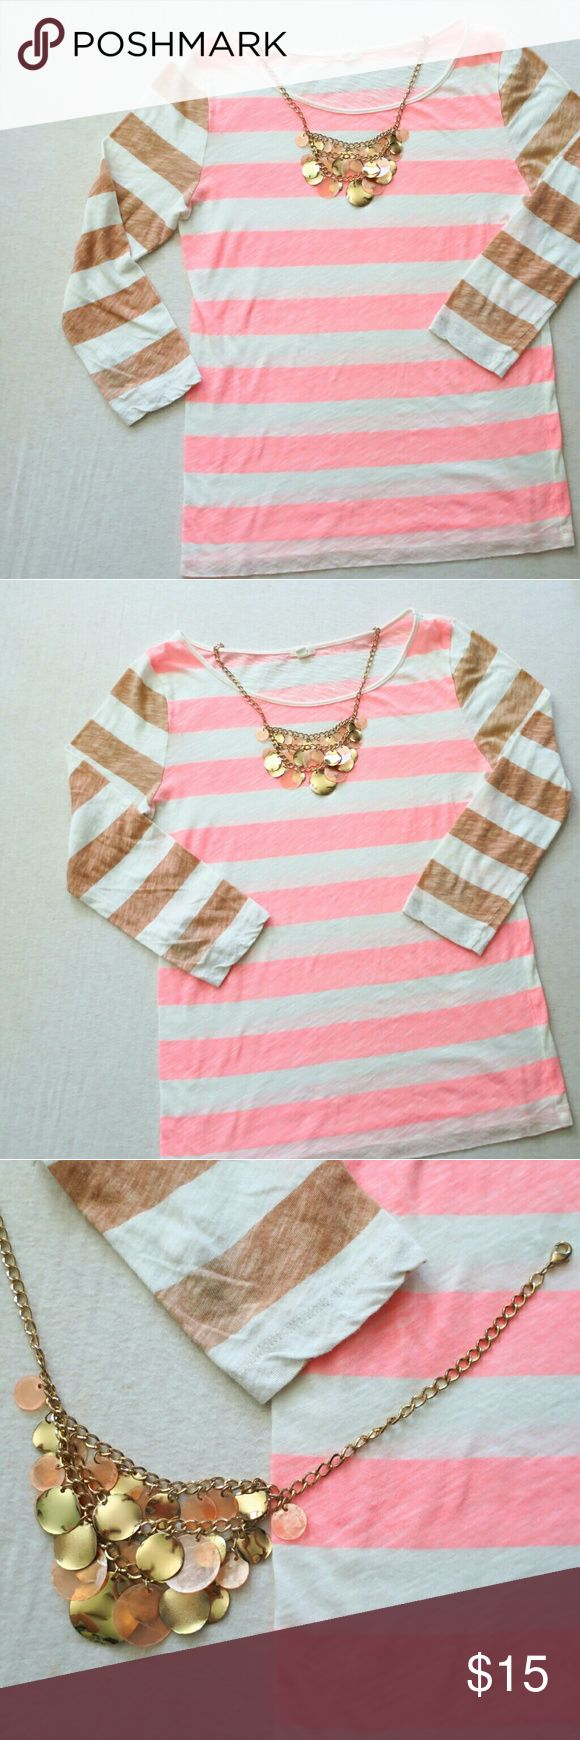 JCrew 3/4 Striped Tee w FREE Matching Necklace! Matching Necklace is FREE with purchase of this tee!  Coral and bronze In GREAT condition   Wear it with Jeans or slacks!   NWOT  FAST SHIPPING  TOP RATED SELLER  Create a bundle of items and get a Private discounted price offer from me   100%cotton J. Crew Tops